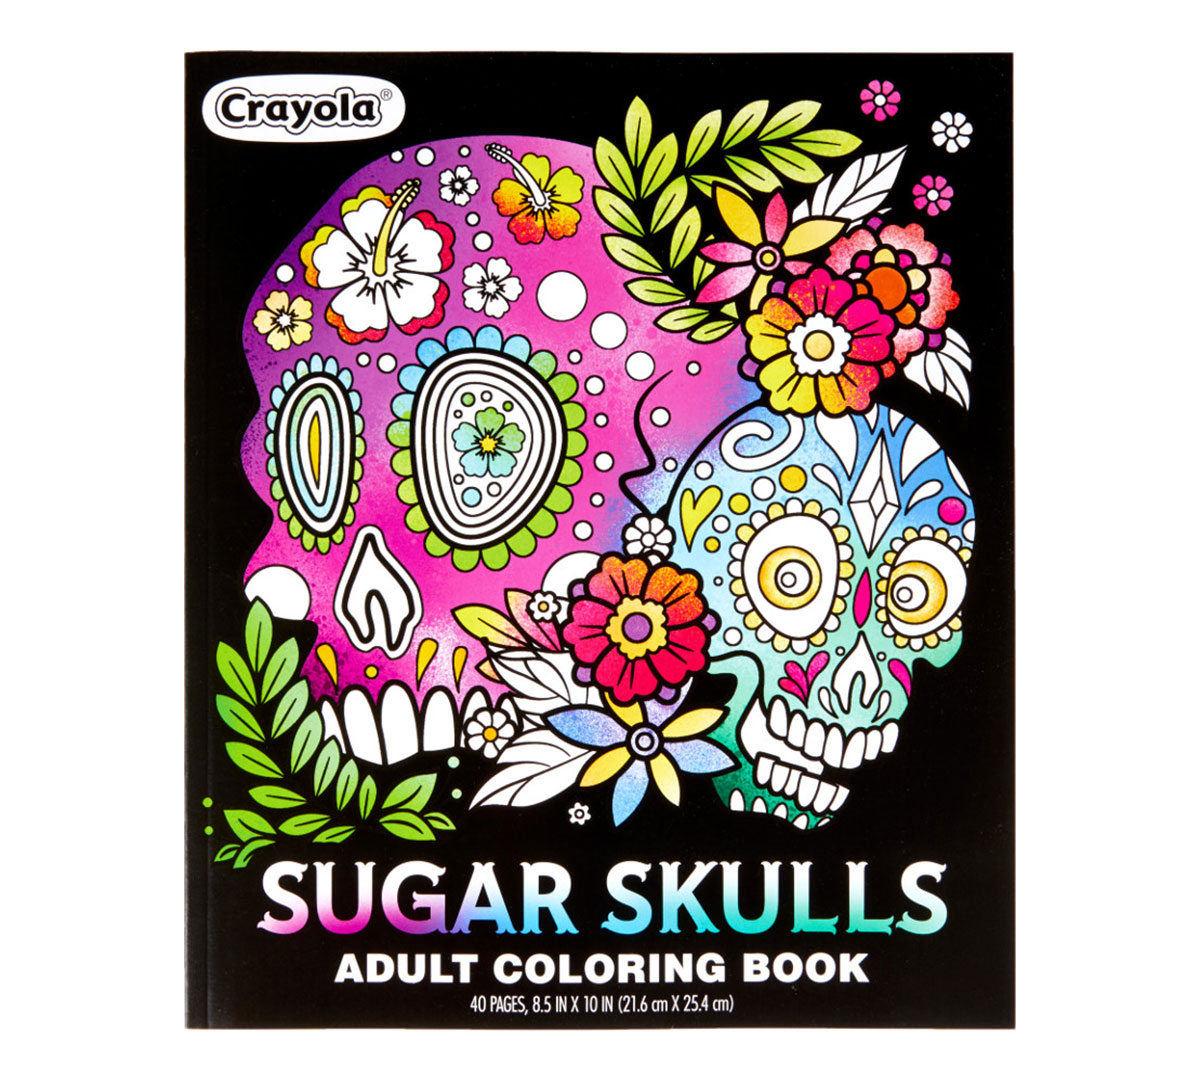 Sugar Skulls Coloring Book For Teens & Adults Crayola.com Crayola